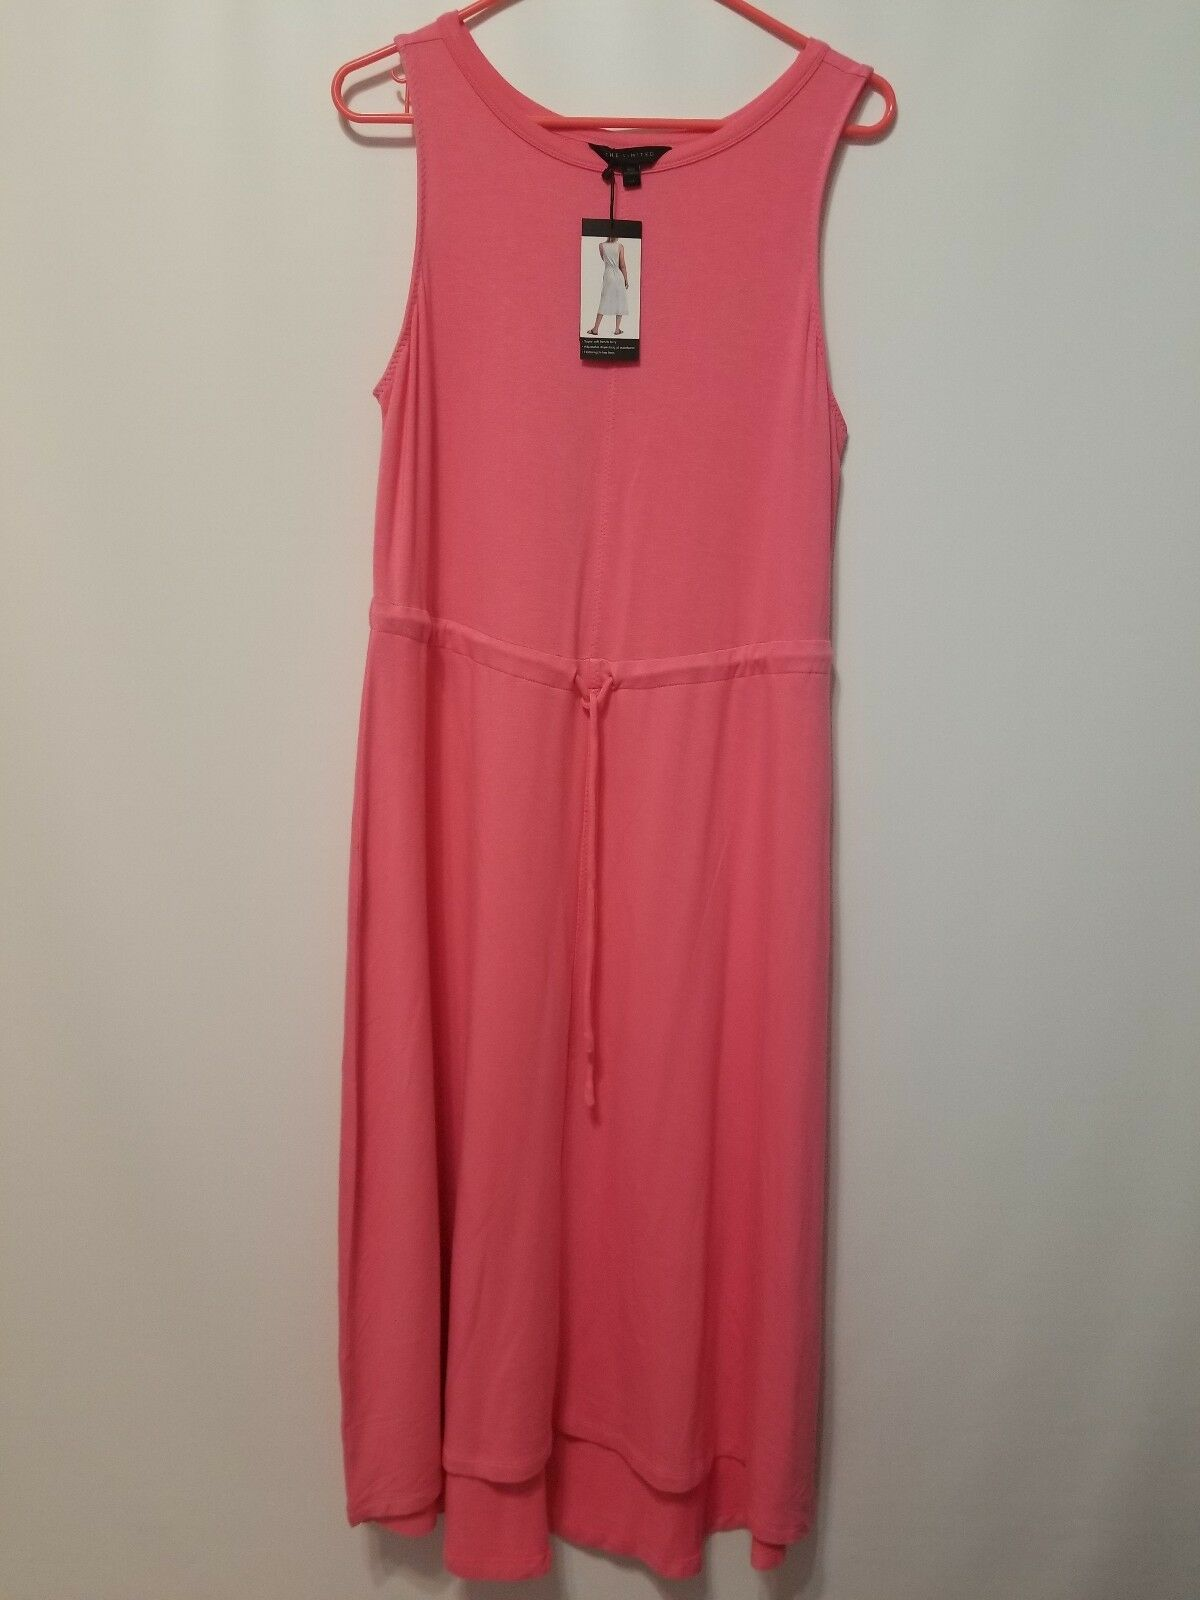 The Limited Peachy Pink Drawstring Waist Casual Dress Size L NWT